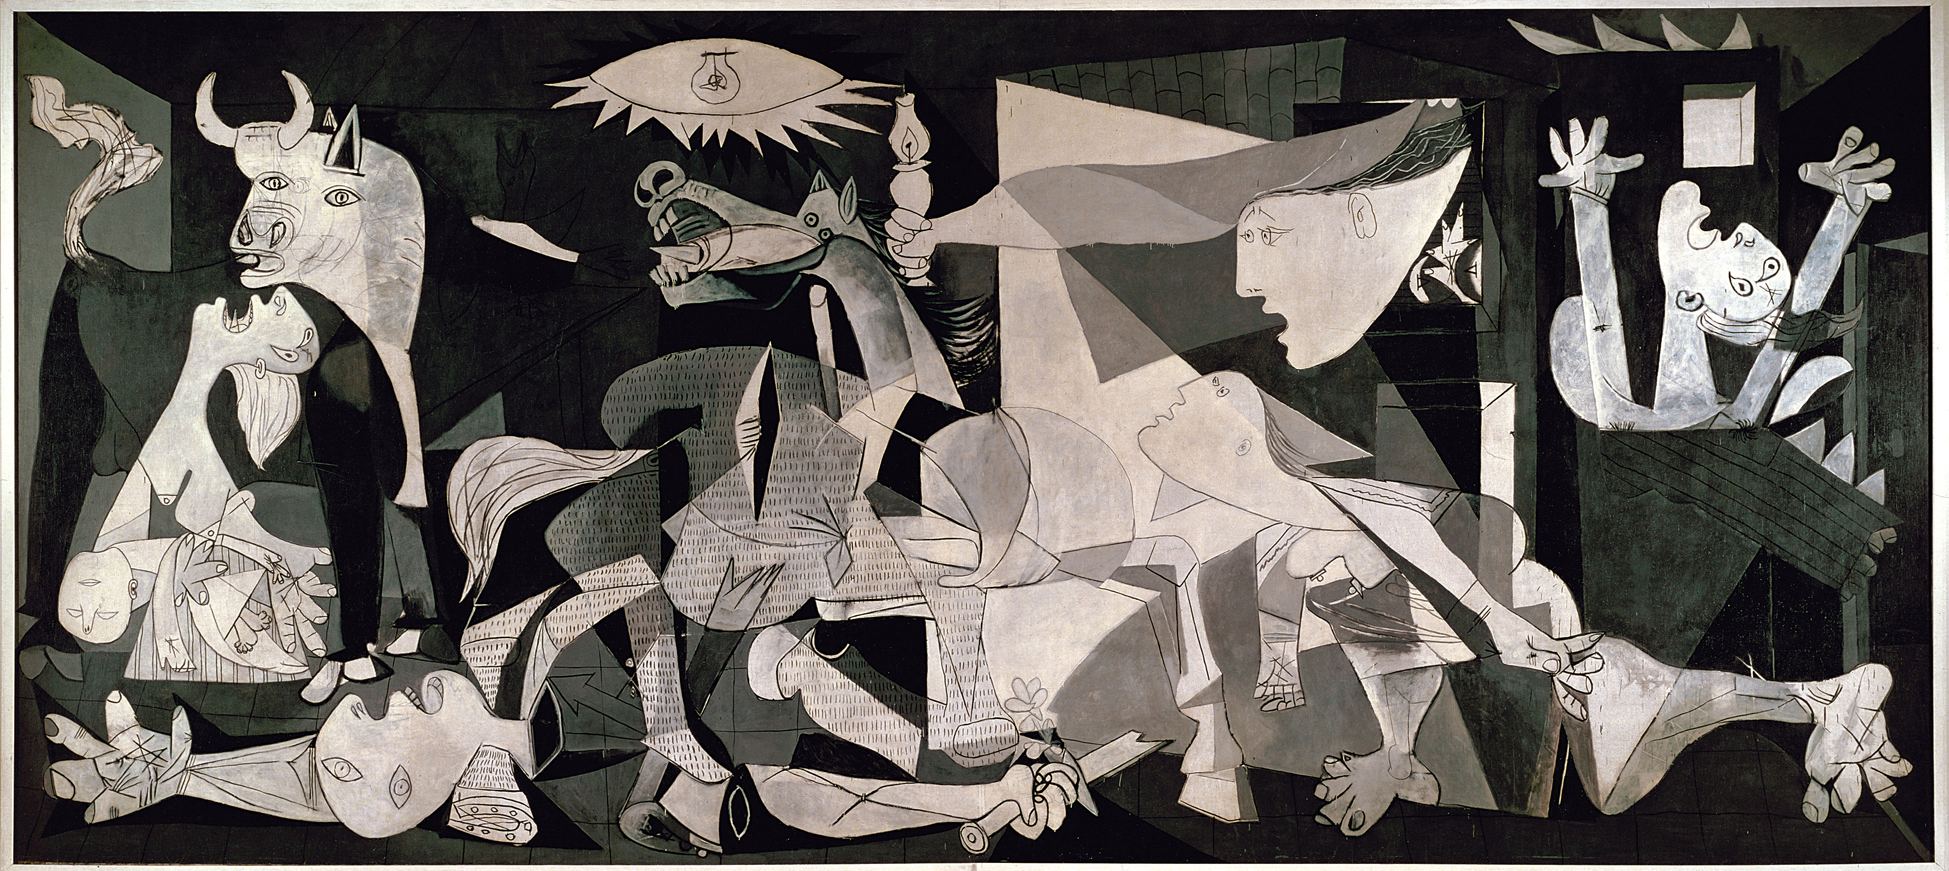 Pablo Picasso, Guernica. Paris, June 4, 1937. Oil on canvas, 349.3 x 776.6 cm